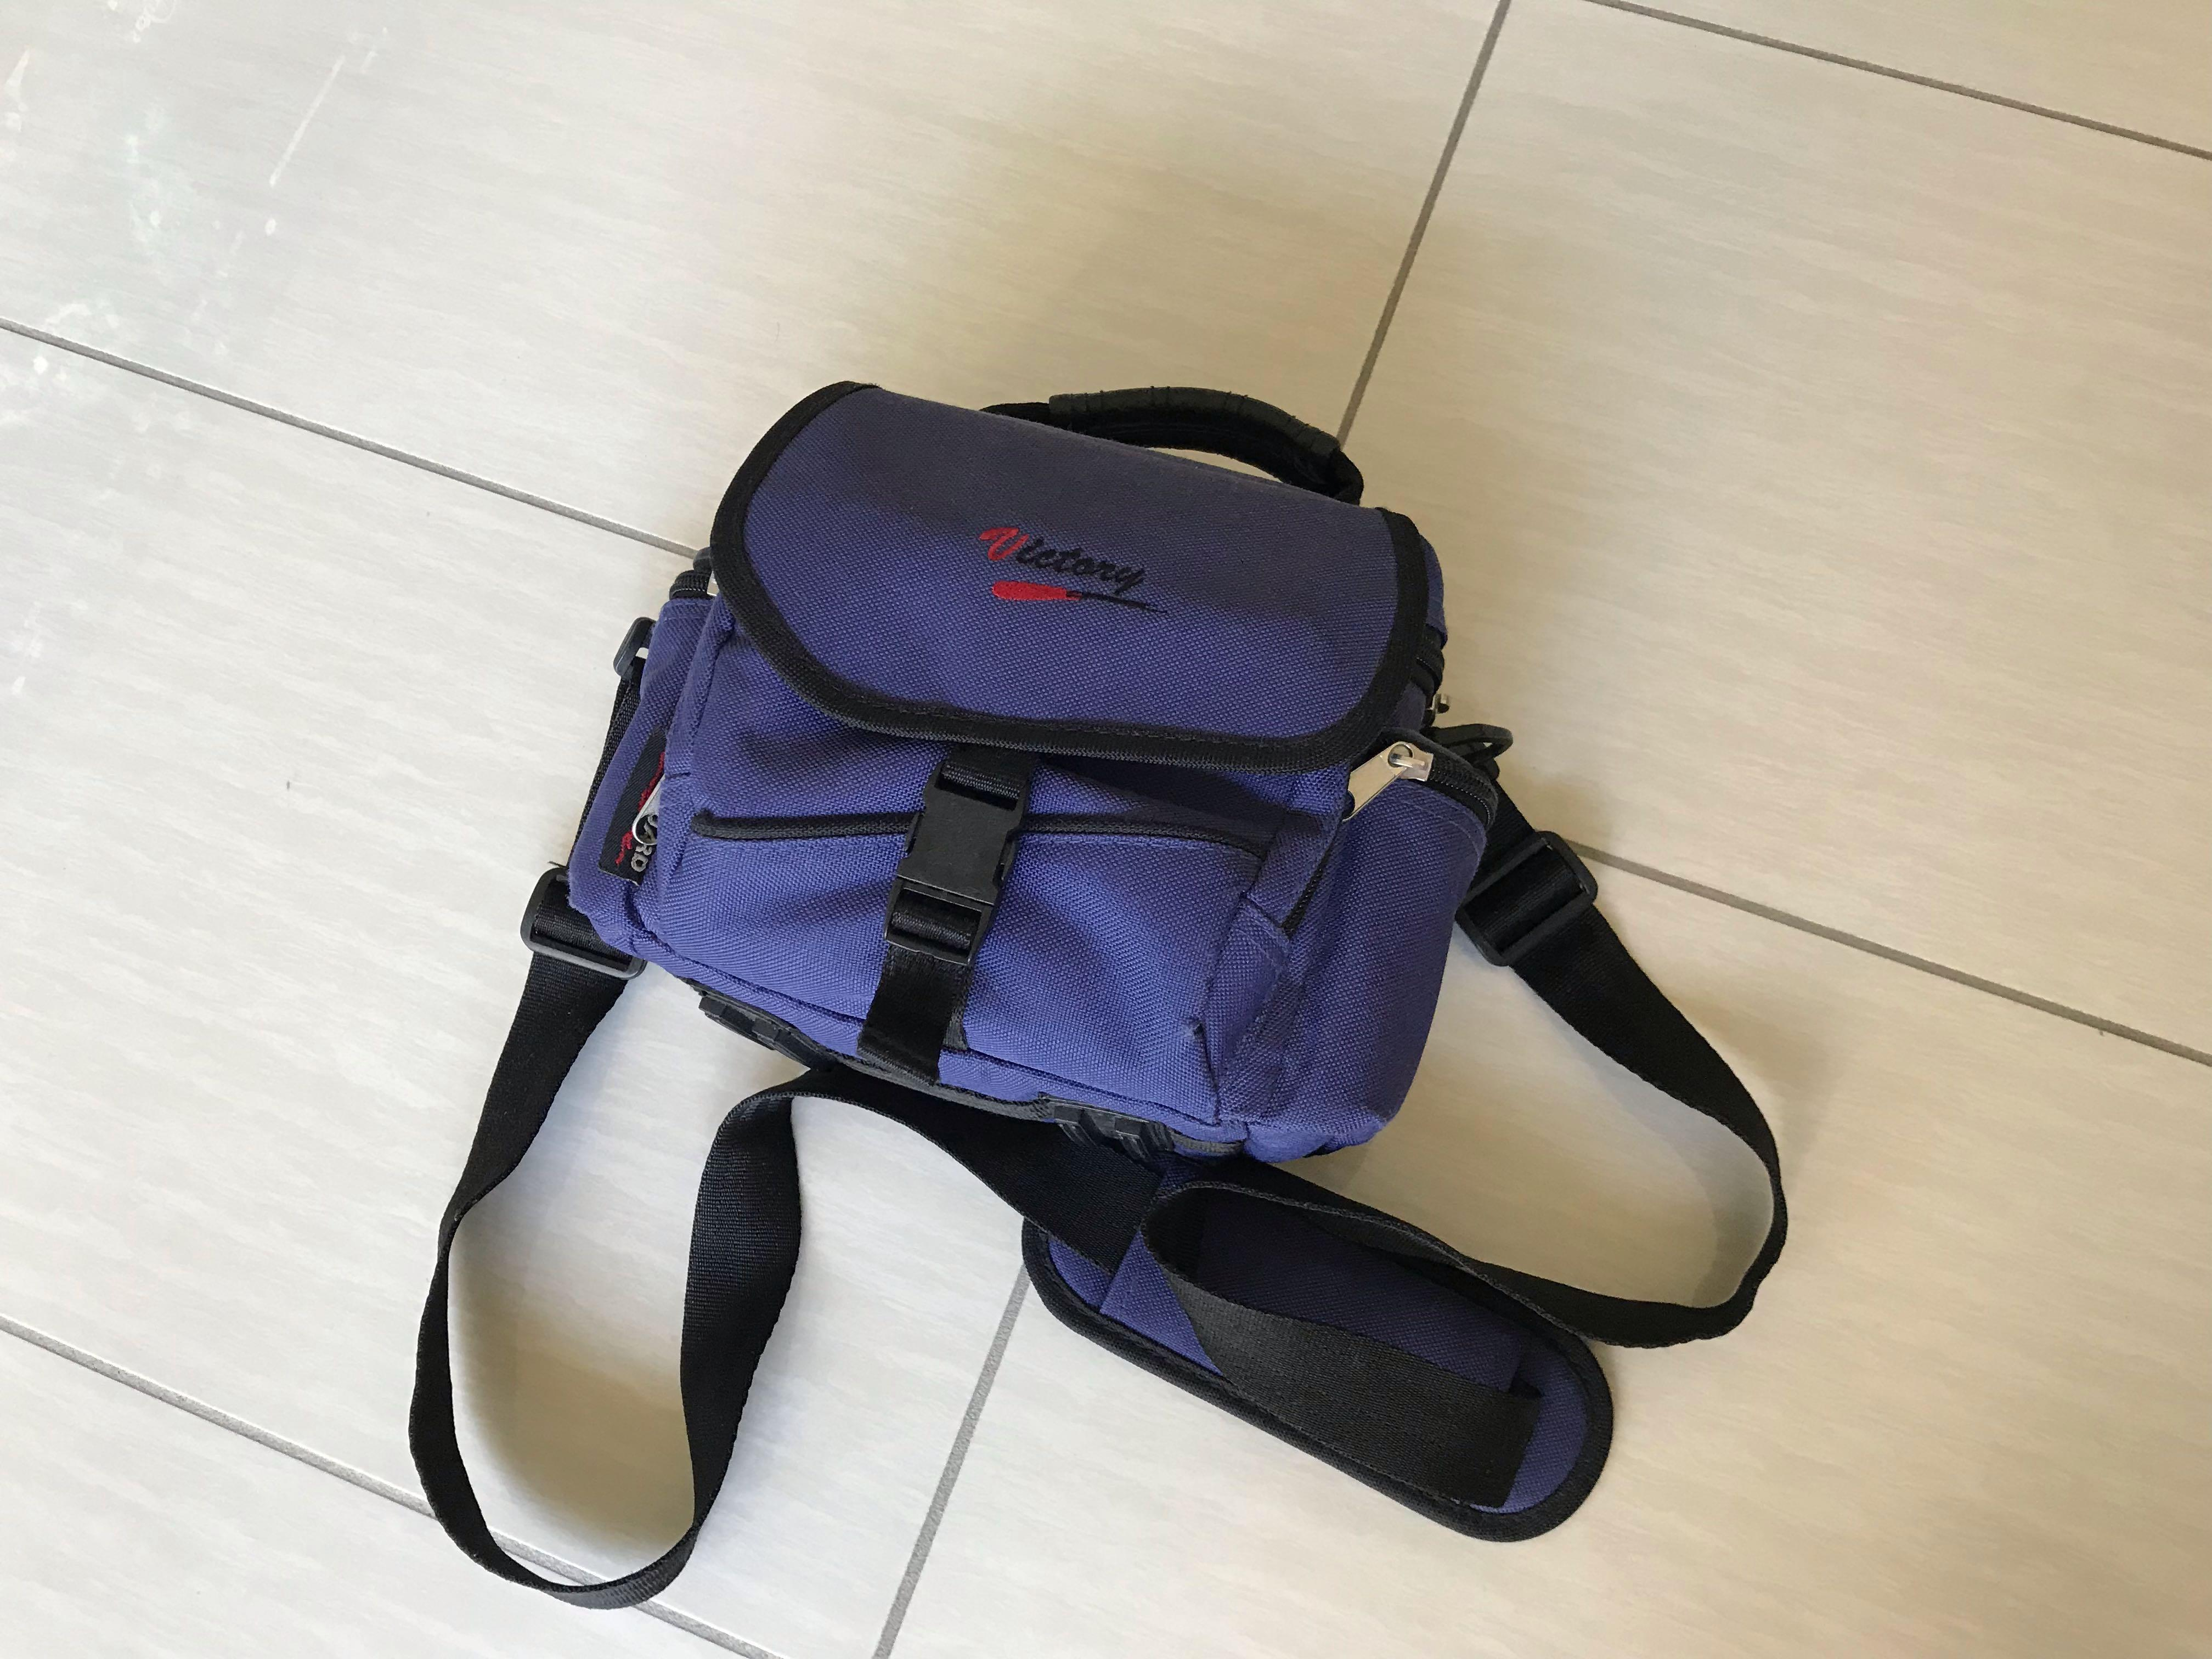 FILM SLR 📸 Canon EOS 300   28–80mm lens   comes with bag